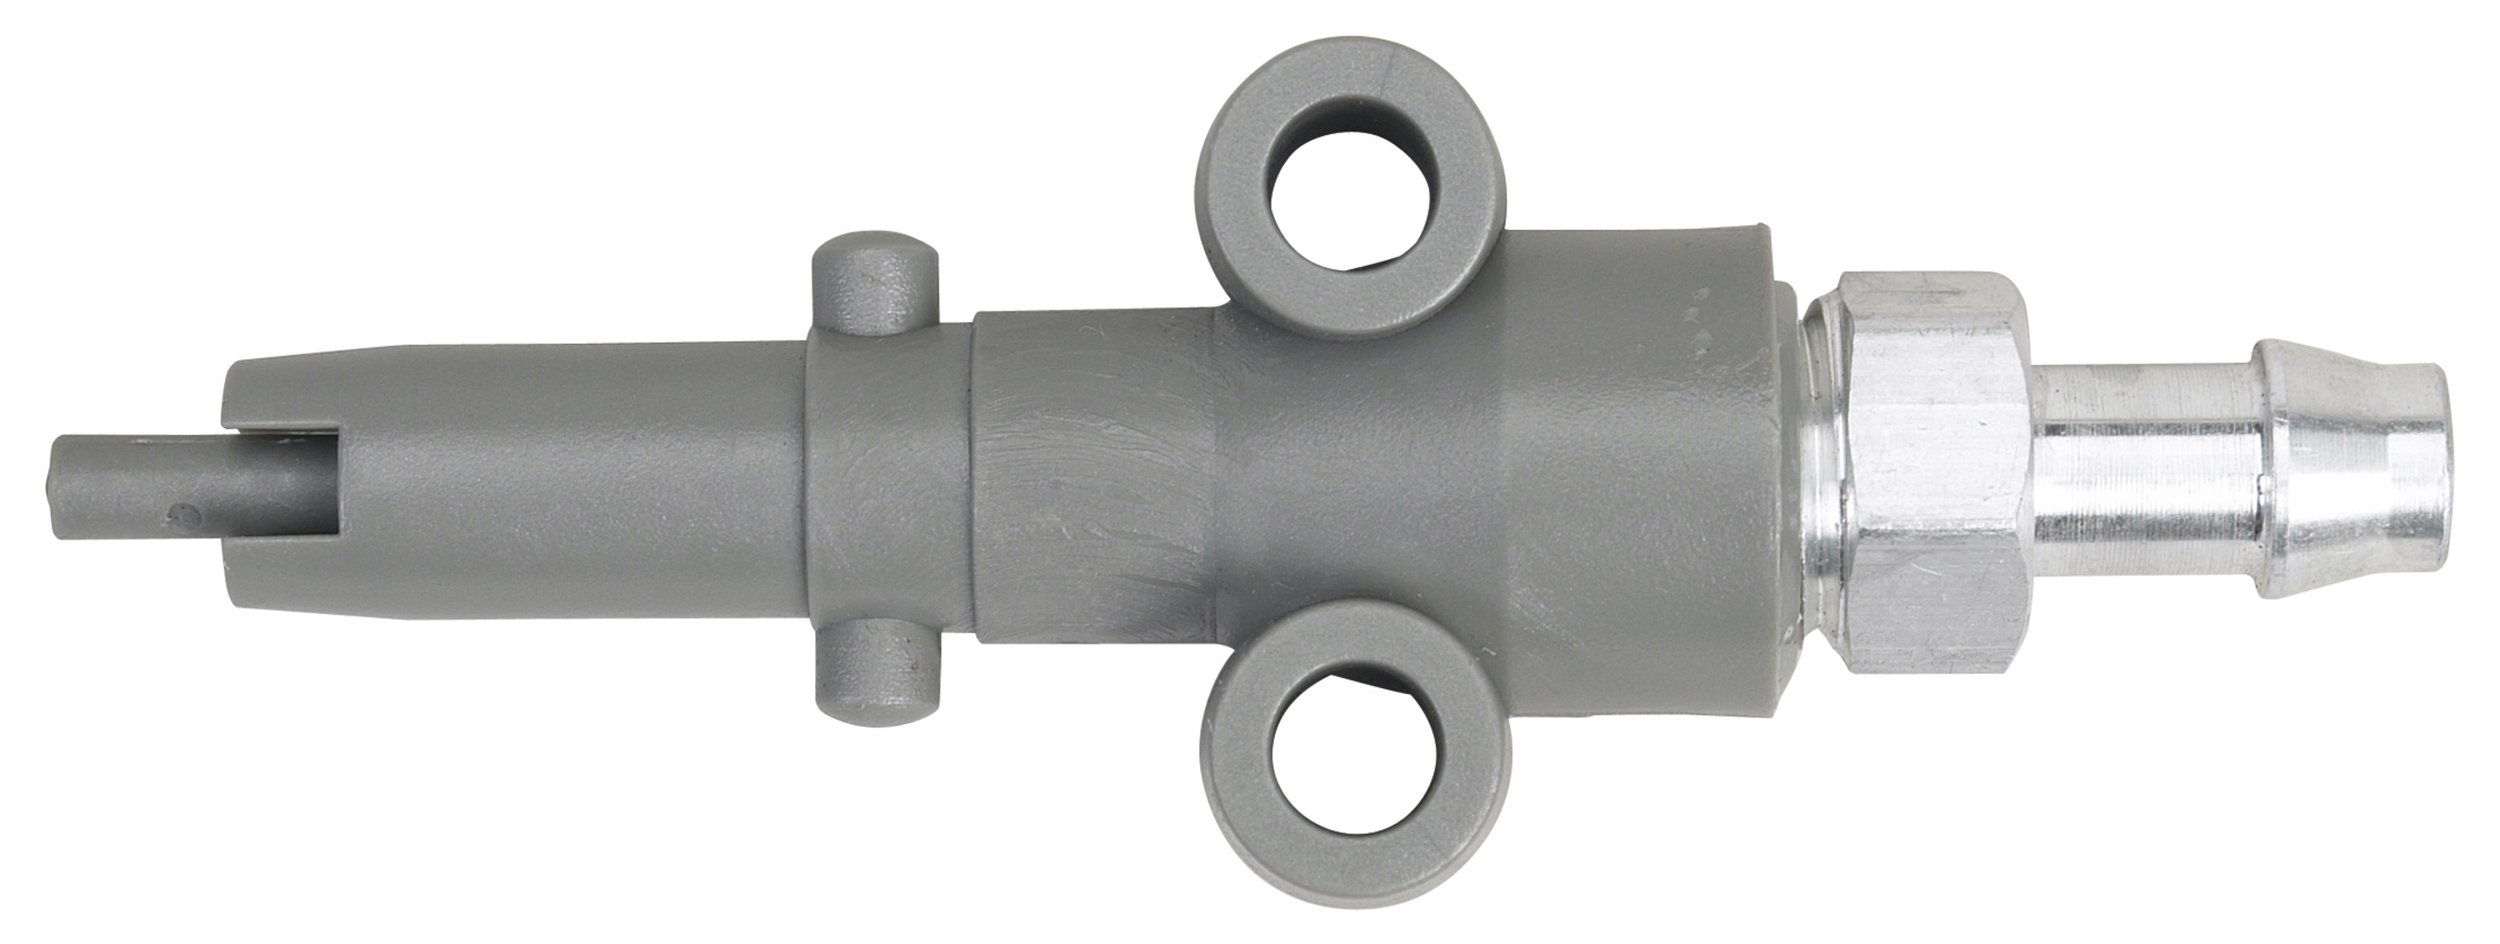 Moeller Marine Fuel Tank Barb Connector (Mercury, 3/8'', Male, Bayonet Style)